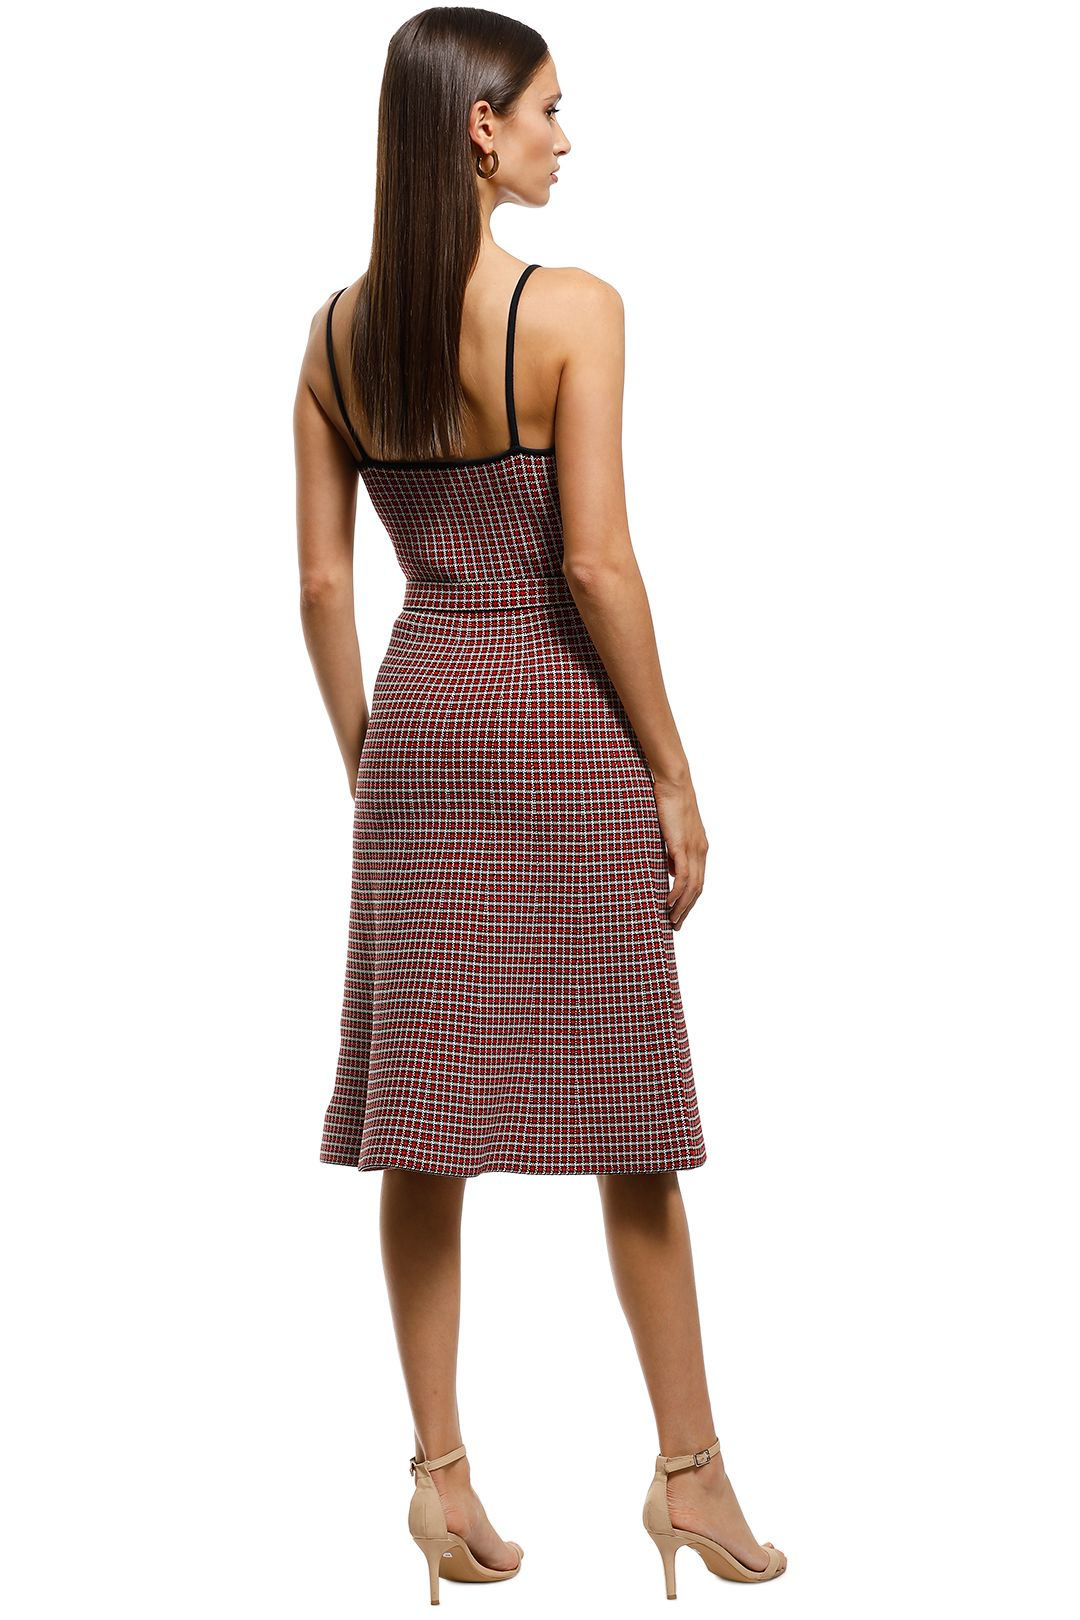 Scanlan Theodore - Crepe Knit Plaid Dress - Red - Back